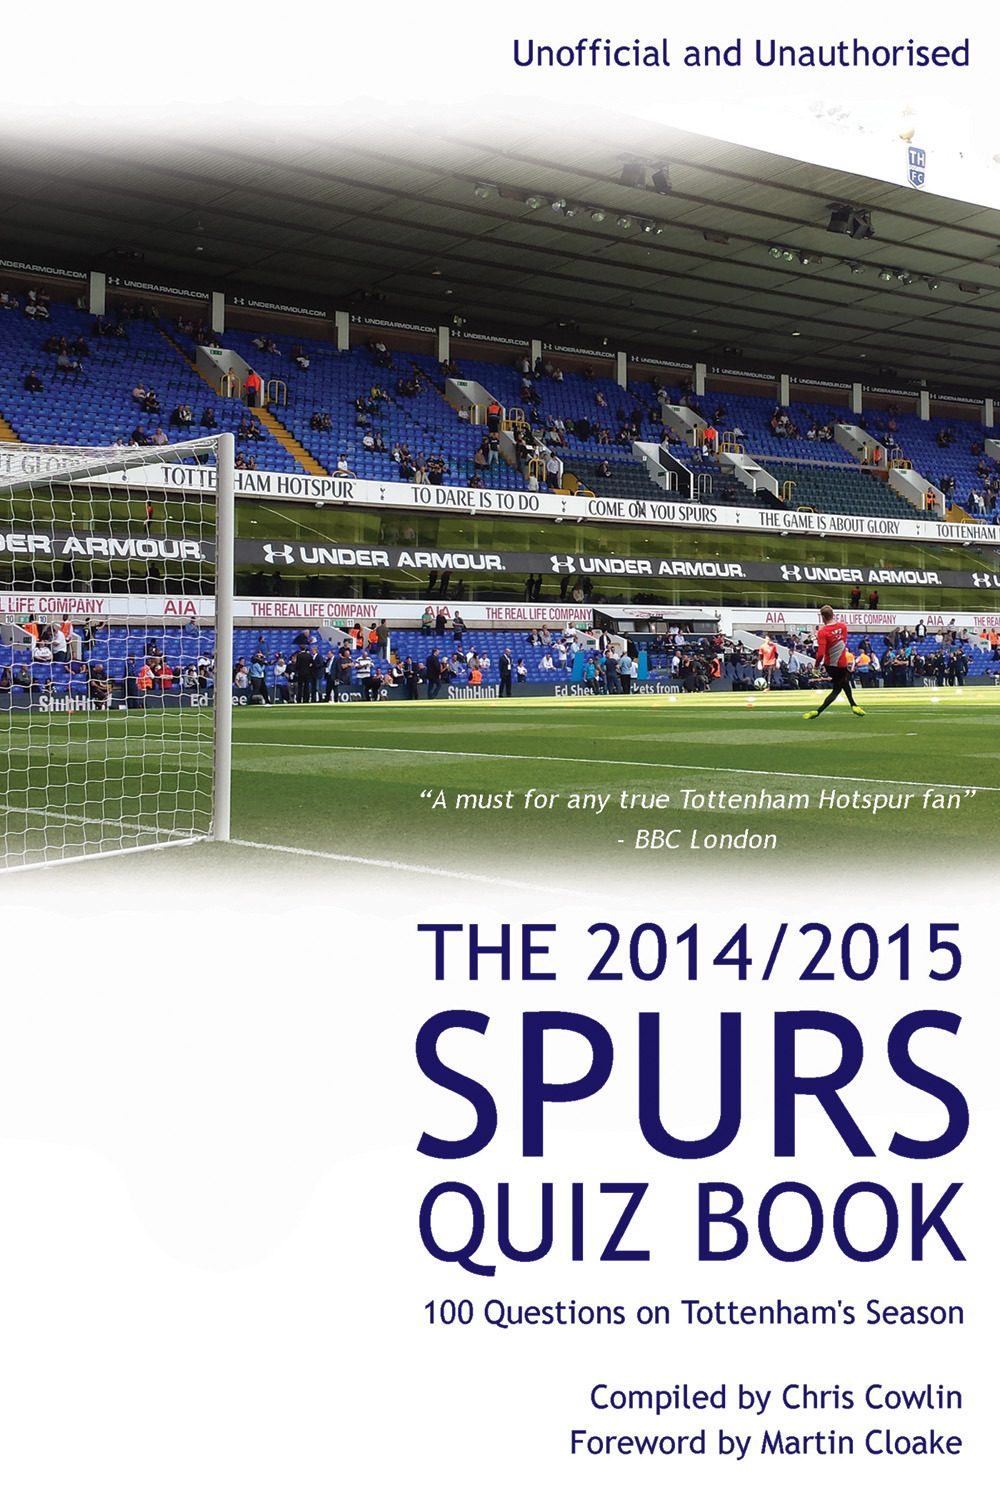 Cowlin, Chris - The 2014/2015 Spurs Quiz Book, ebook